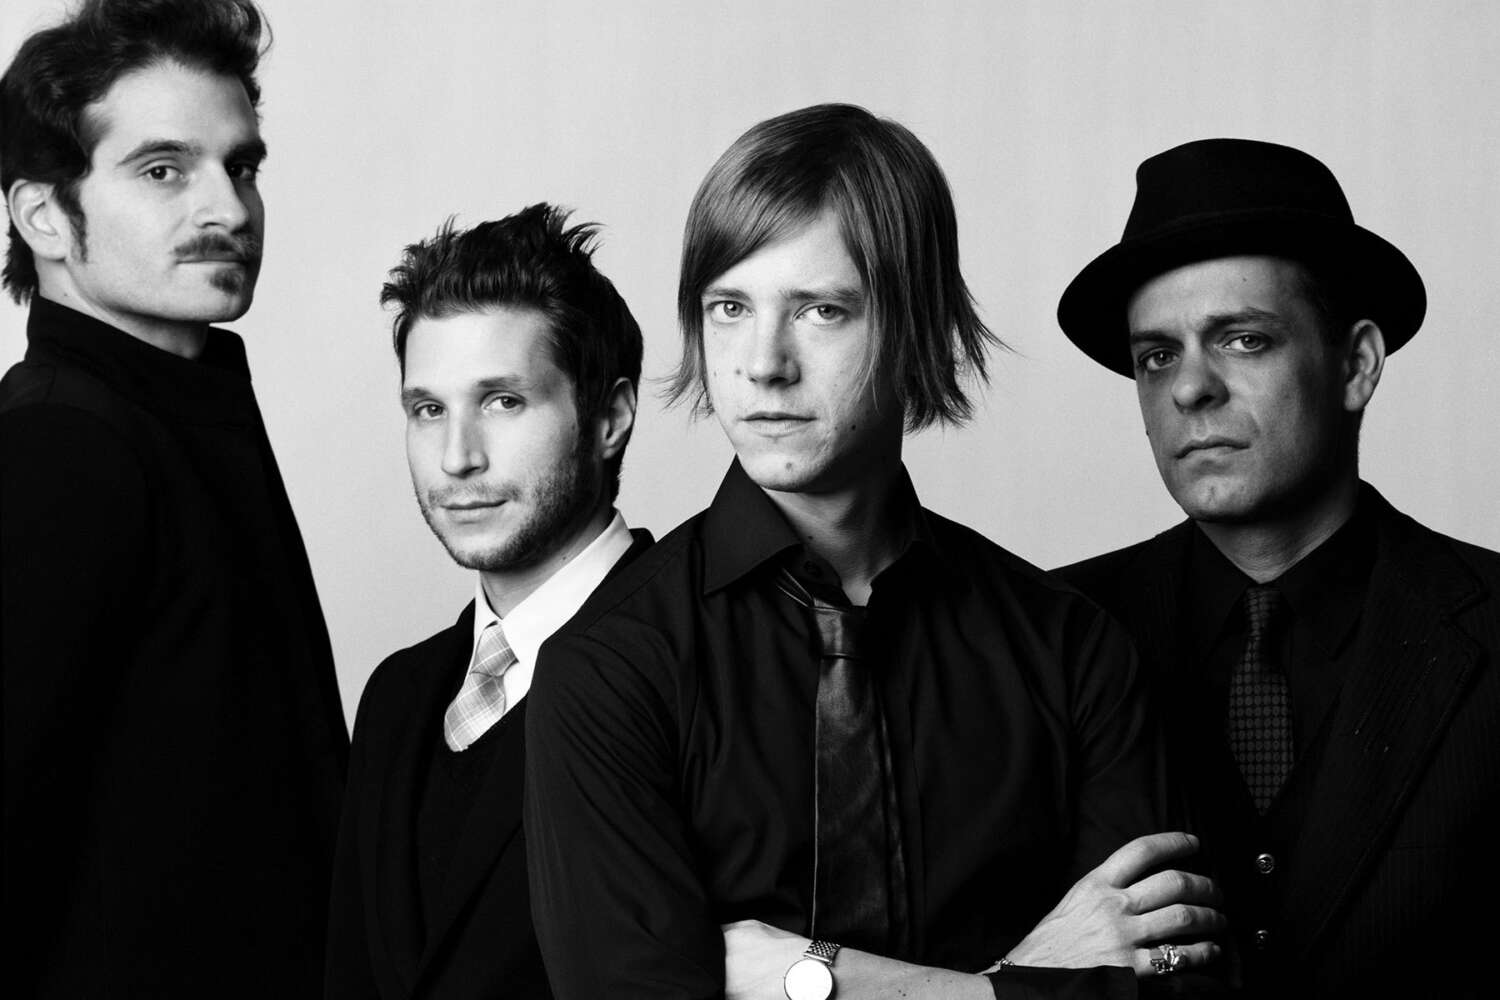 interpol - photo #34